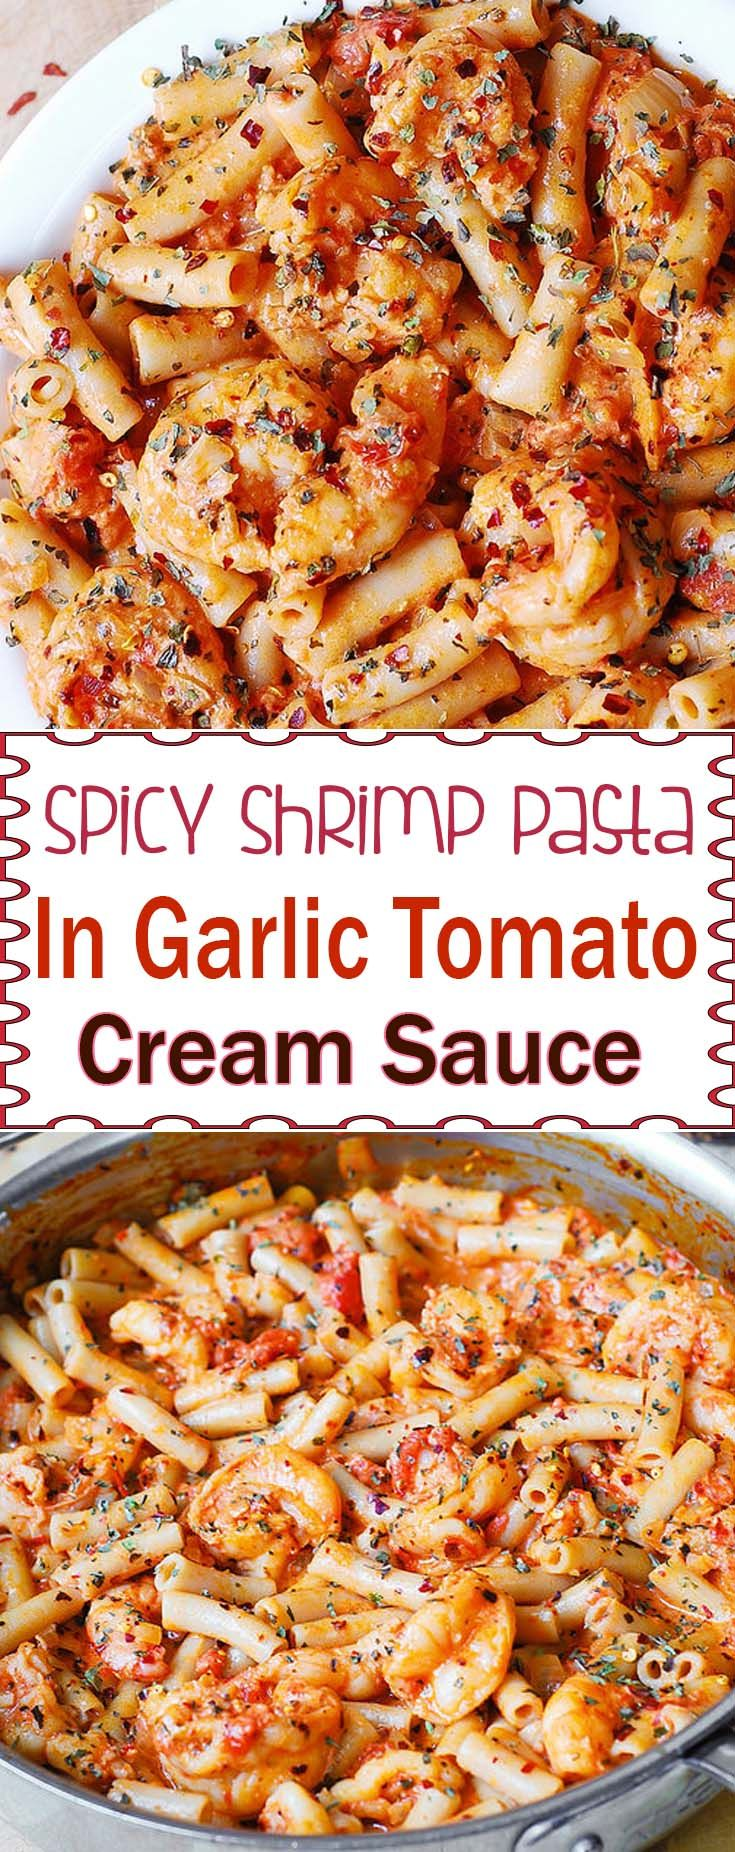 Spicy Shrimp Pasta in Garlic Tomato Cream Sauce                              …